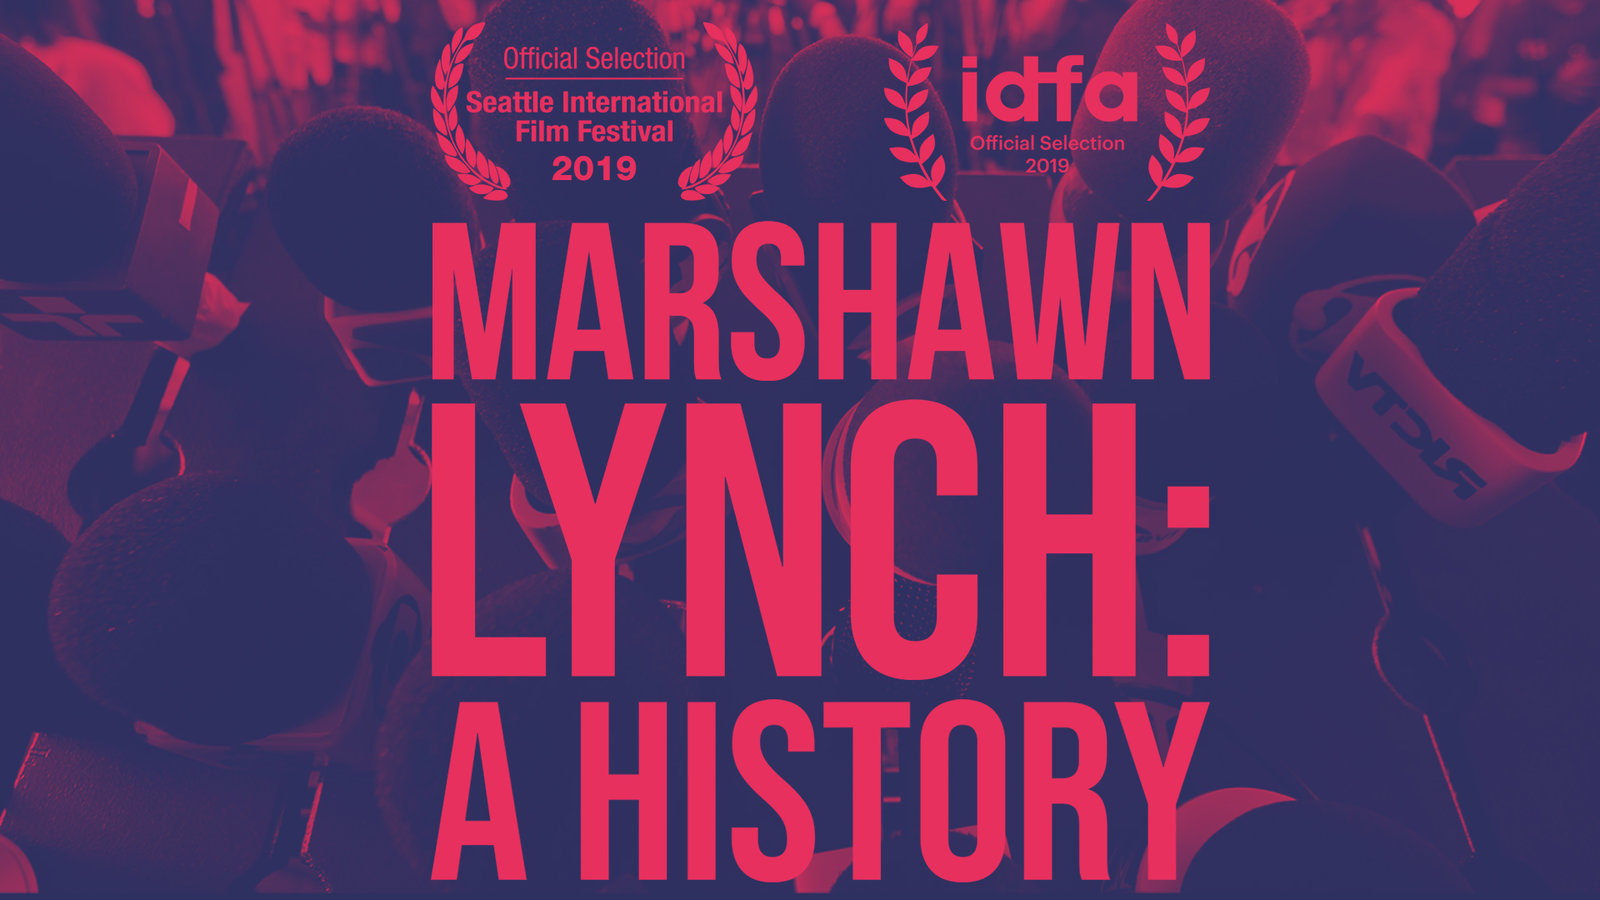 Marshawn Lynch: A History - Exploring a Non-conformist NFL Star